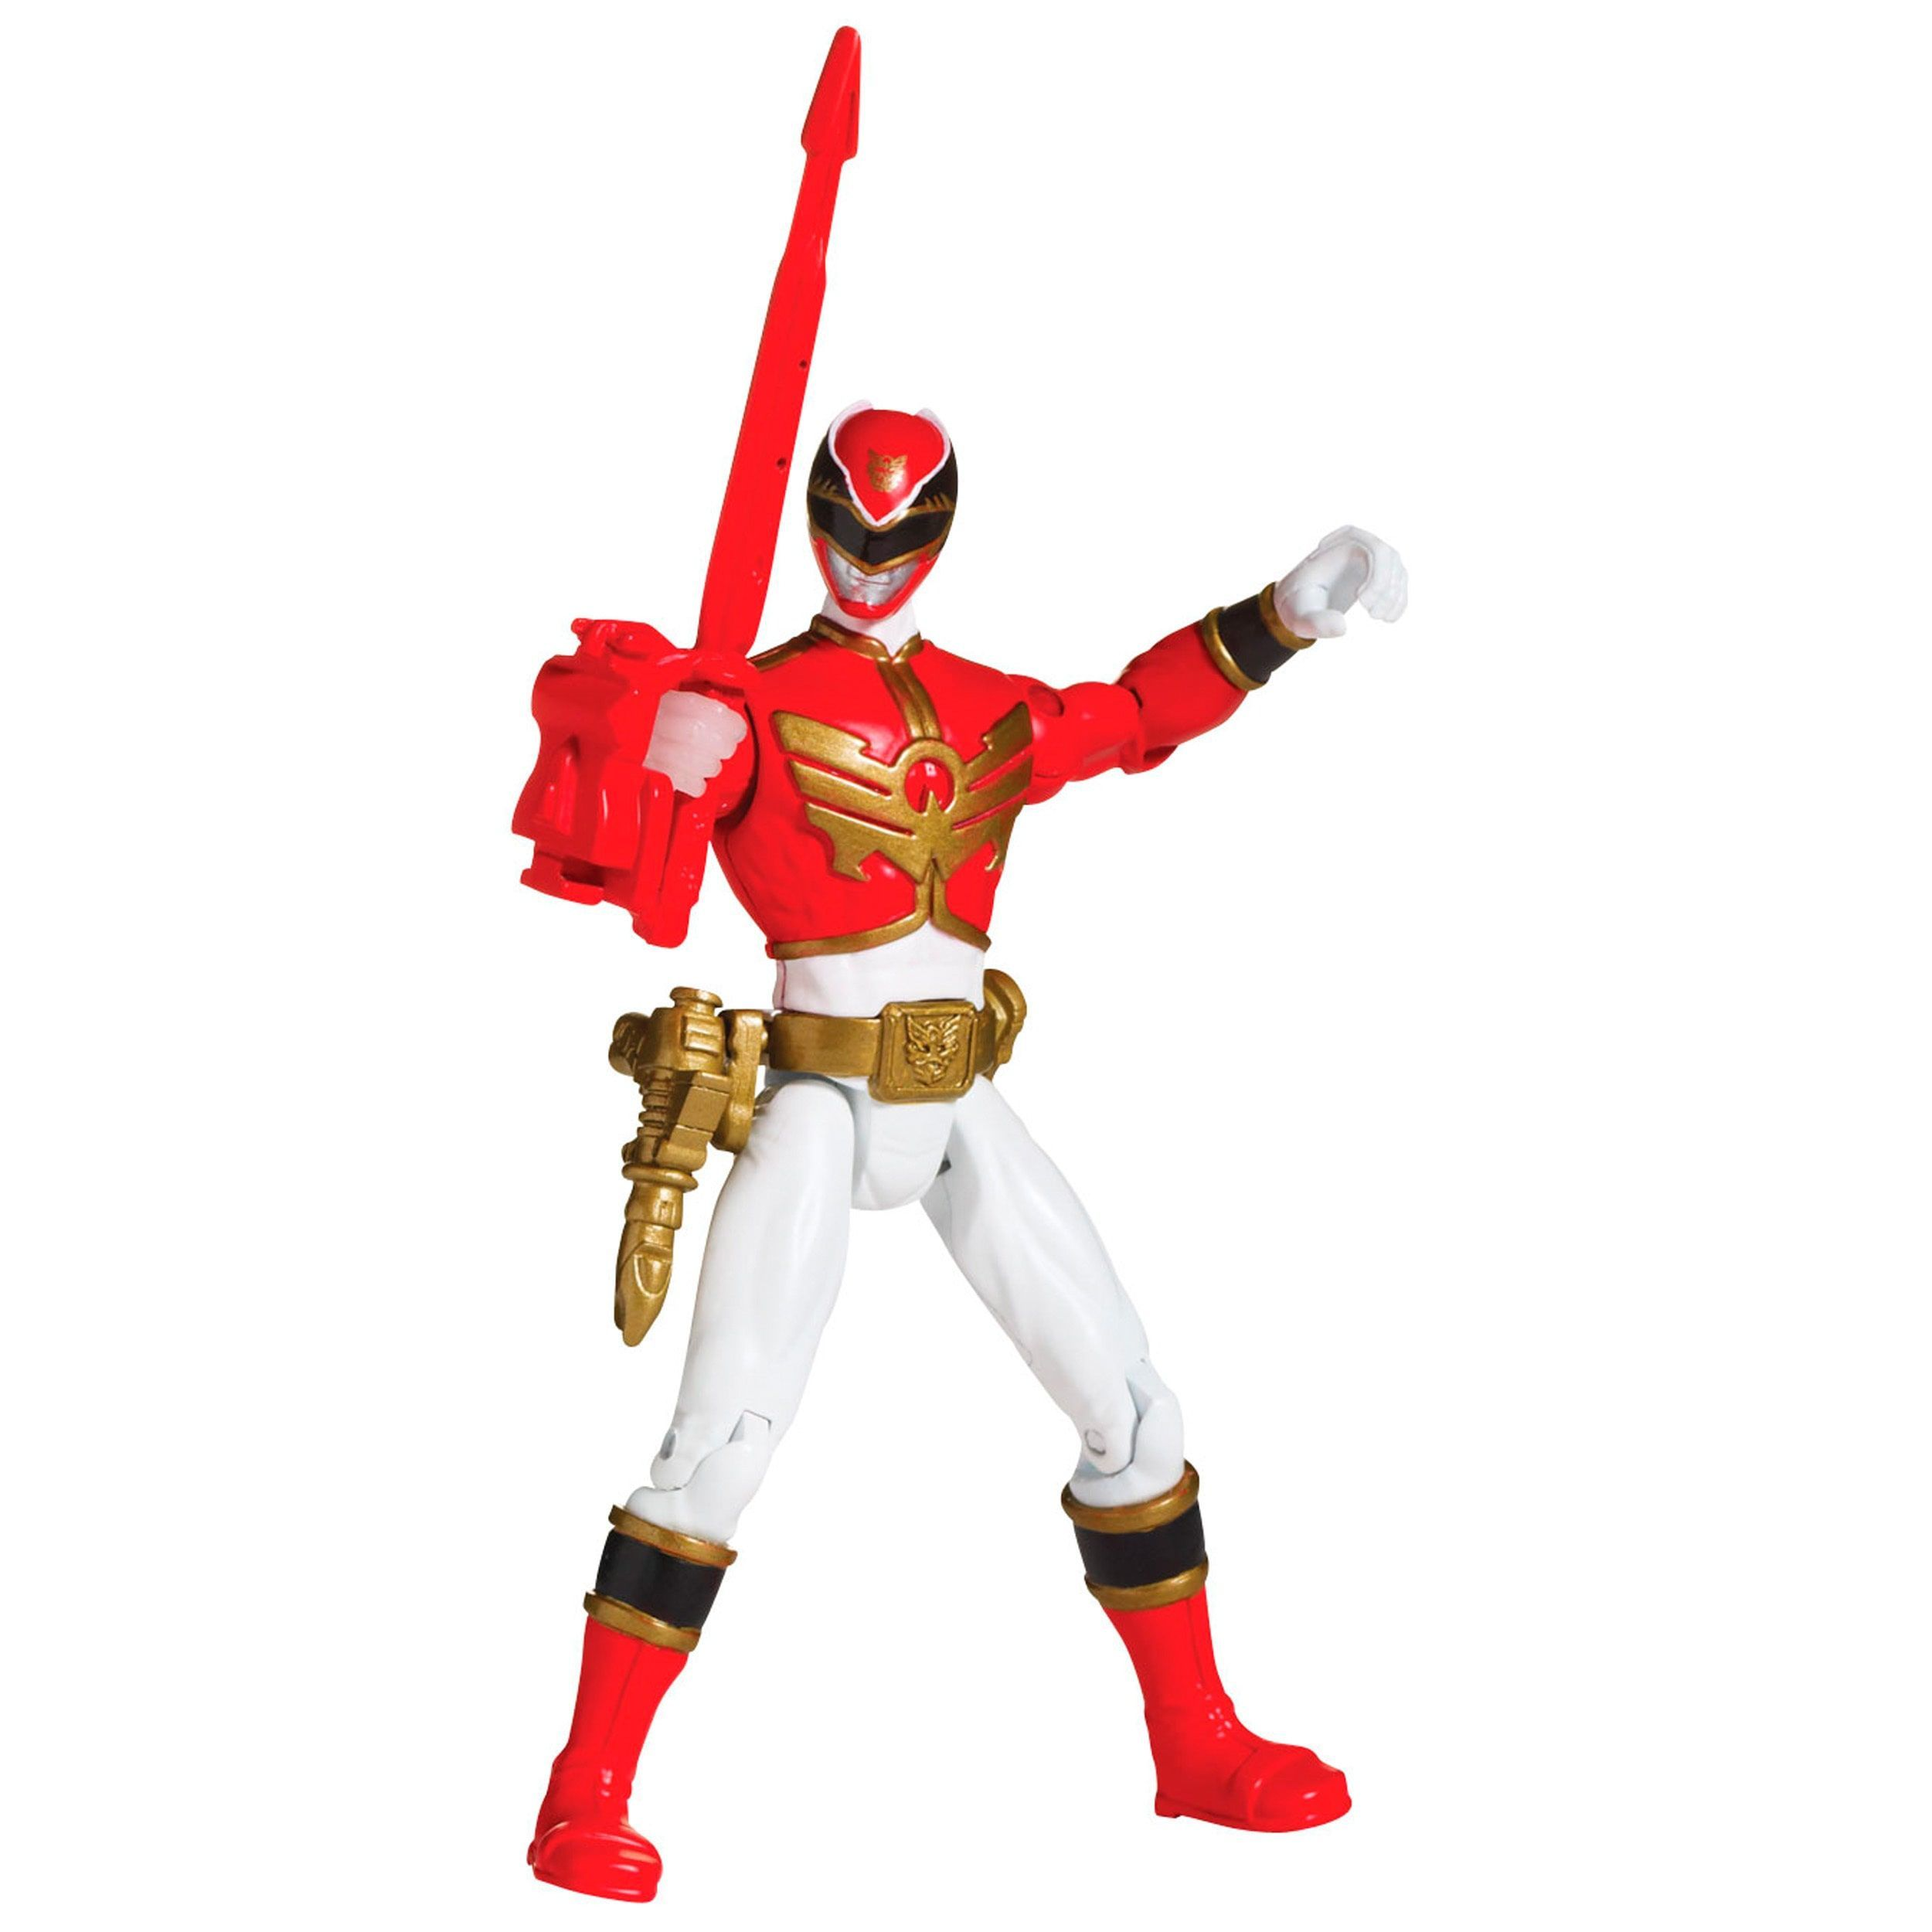 Bandai Power Rangers Ranger 4 Inch Action Figure Products